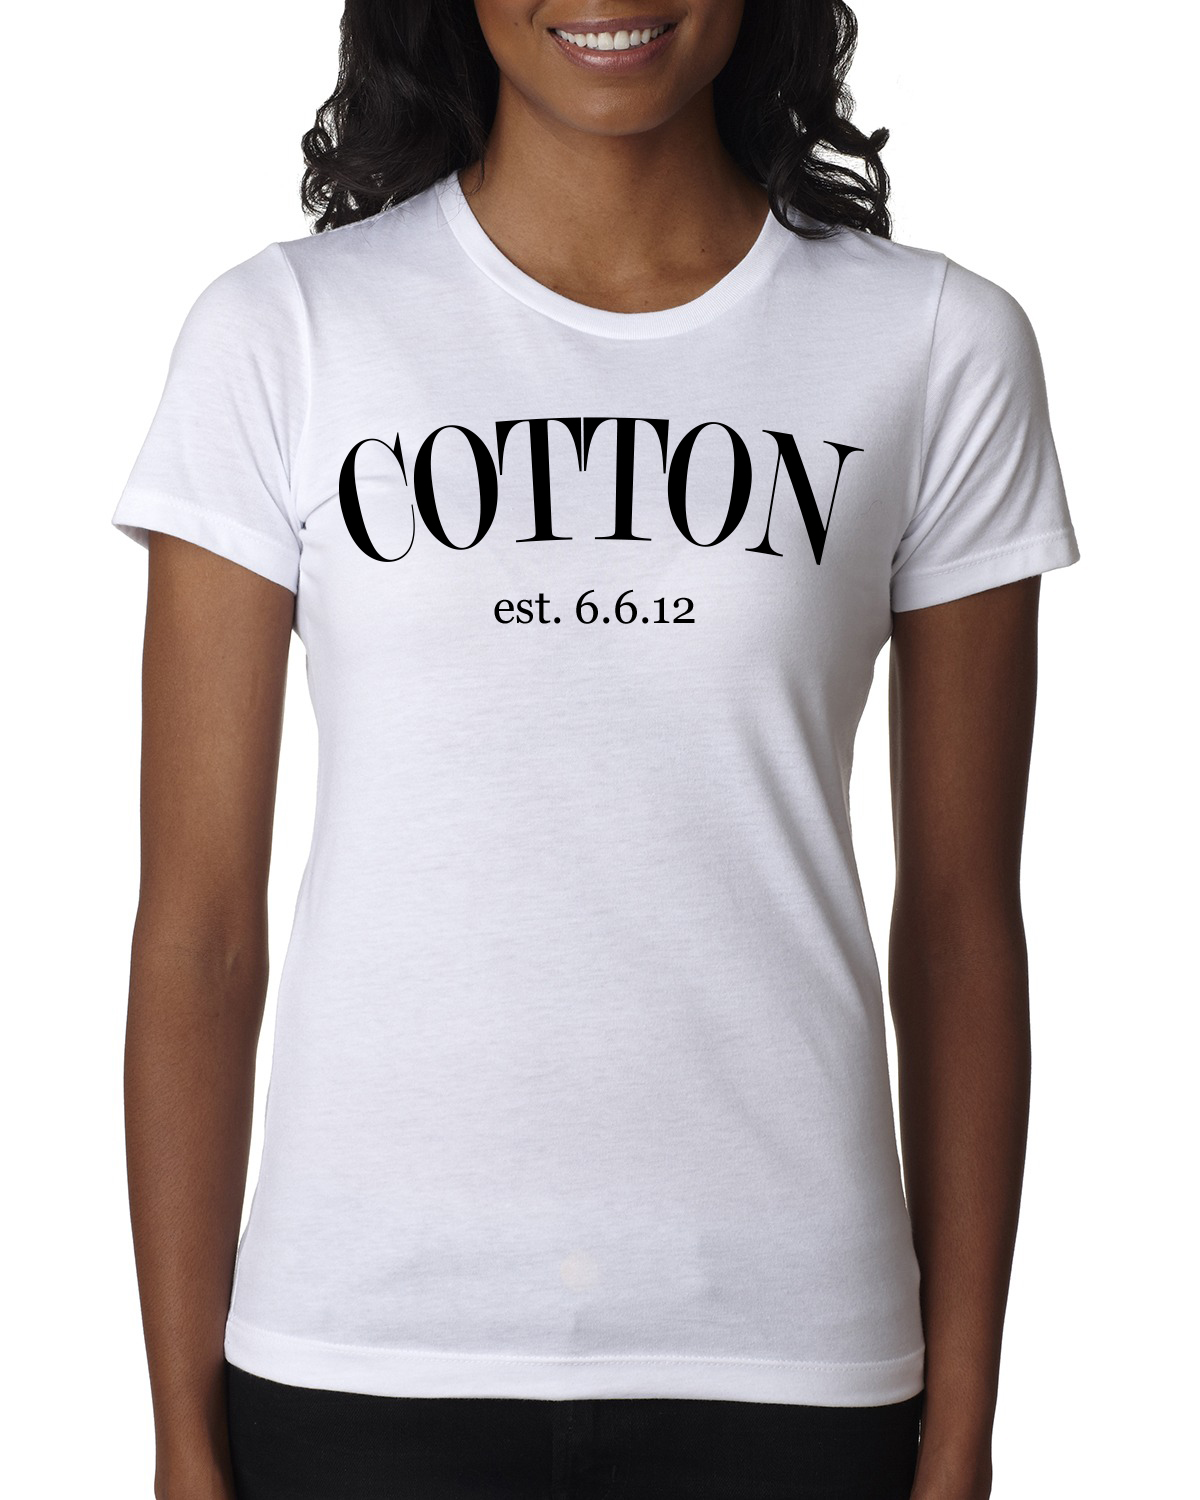 New  Female blk wht  Cotton